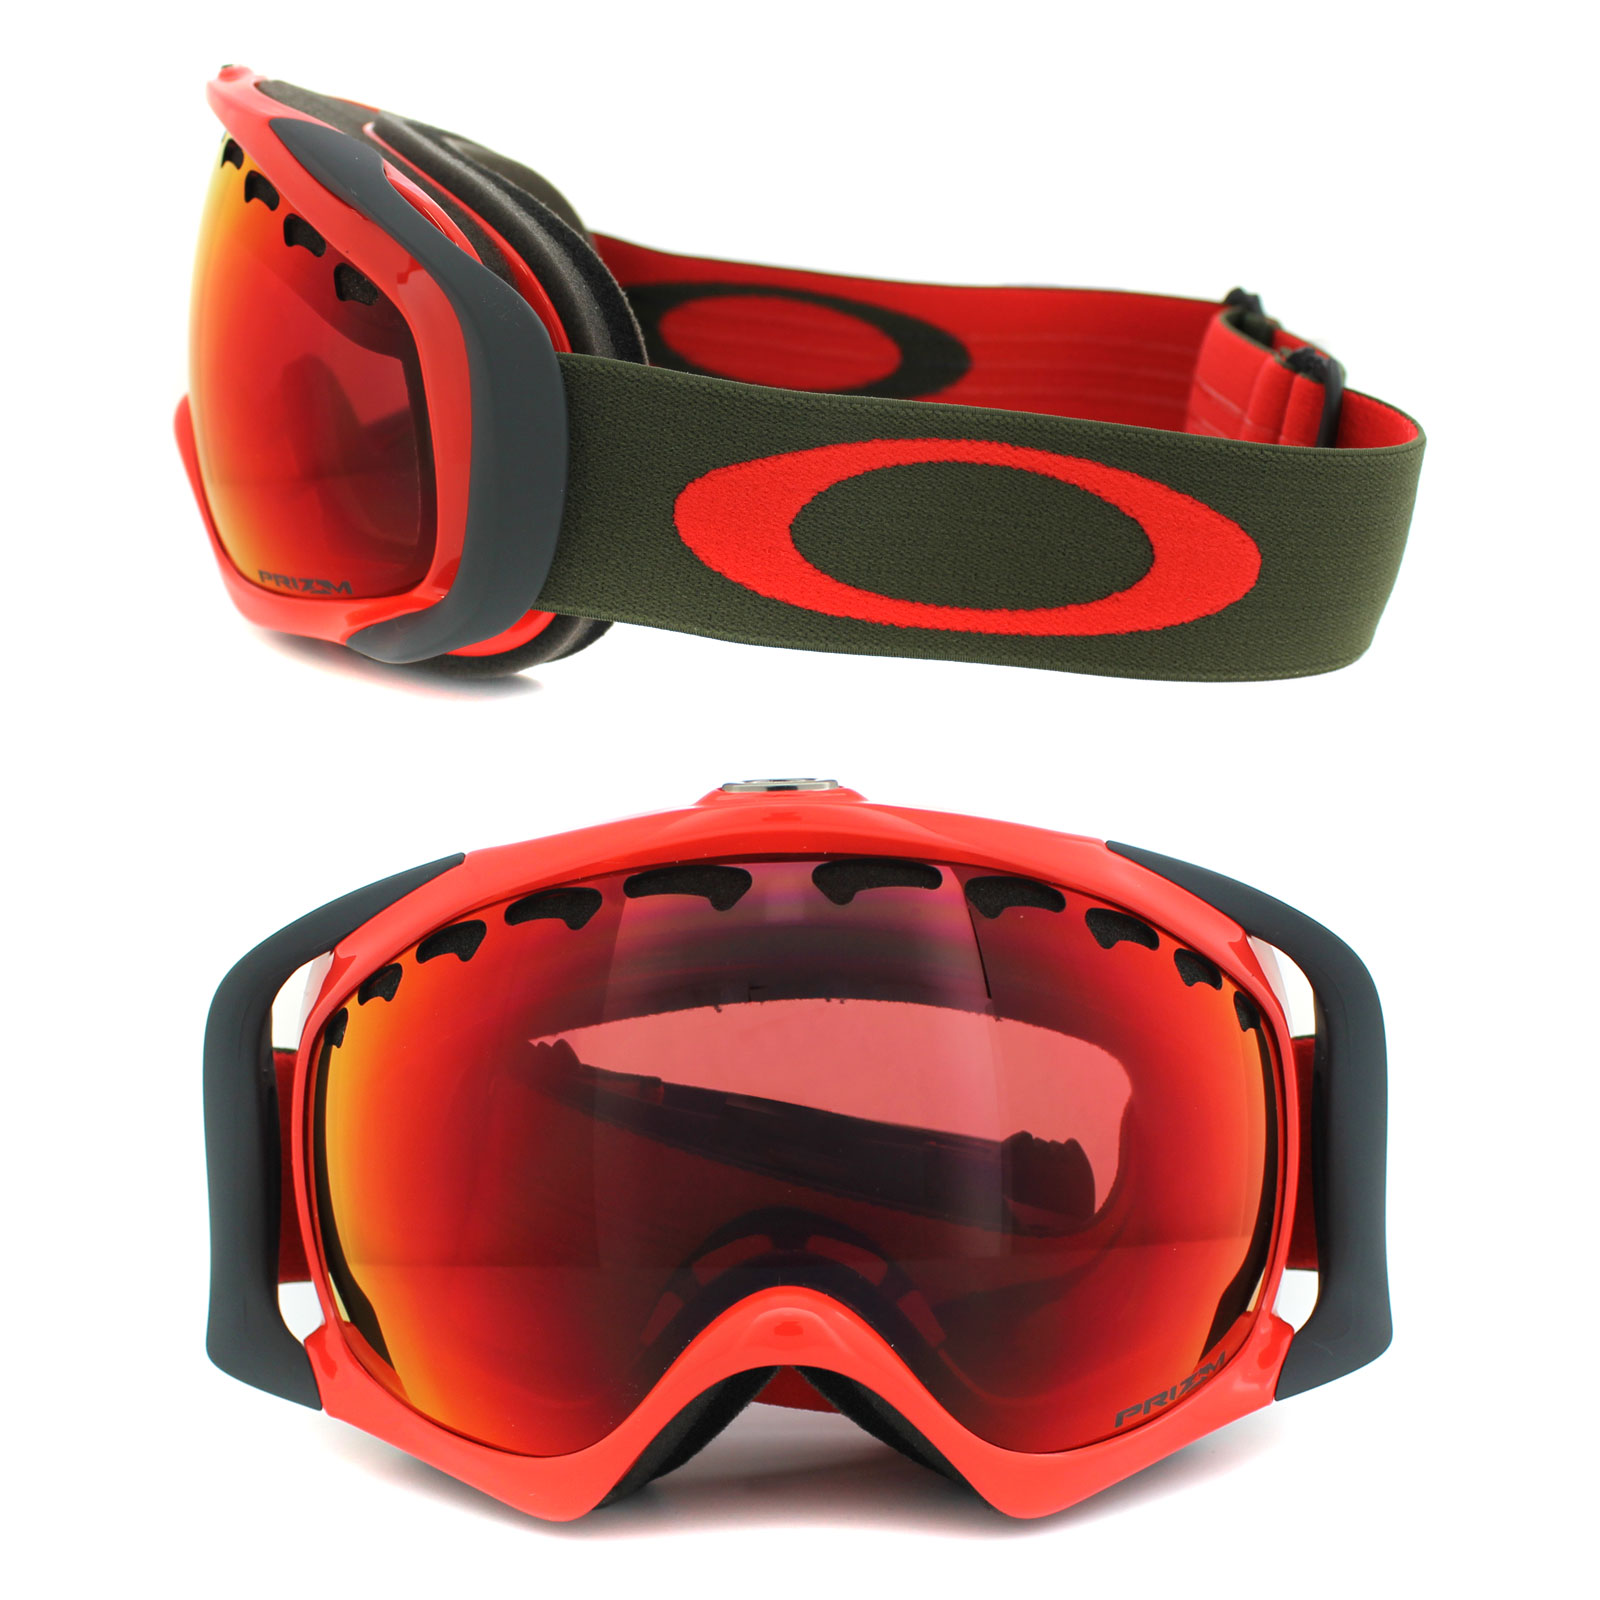 oakley ski goggles crowbar  Oakley Ski Snow Goggles Crowbar OO7005-37 Red Herb Prizm Torch ...